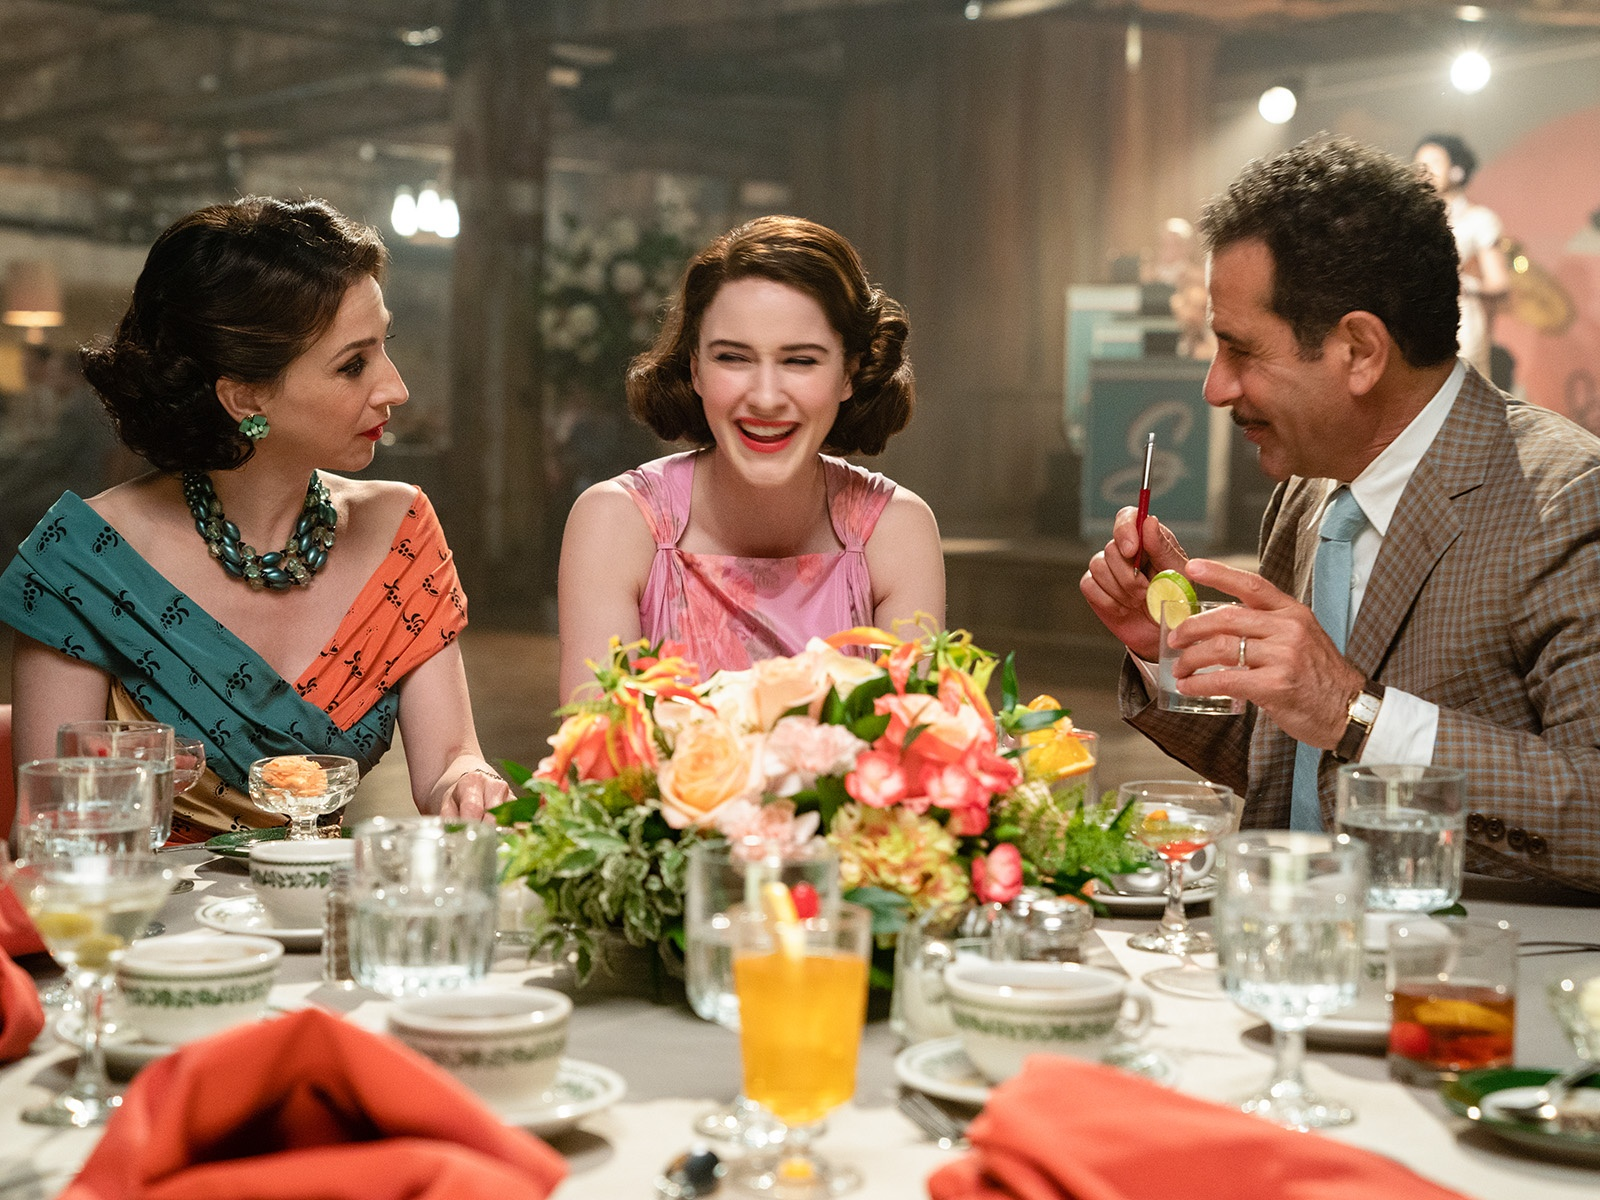 Why 'The Marvelous Mrs. Maisel' Has One of the Best Acting Ensembles of 2019